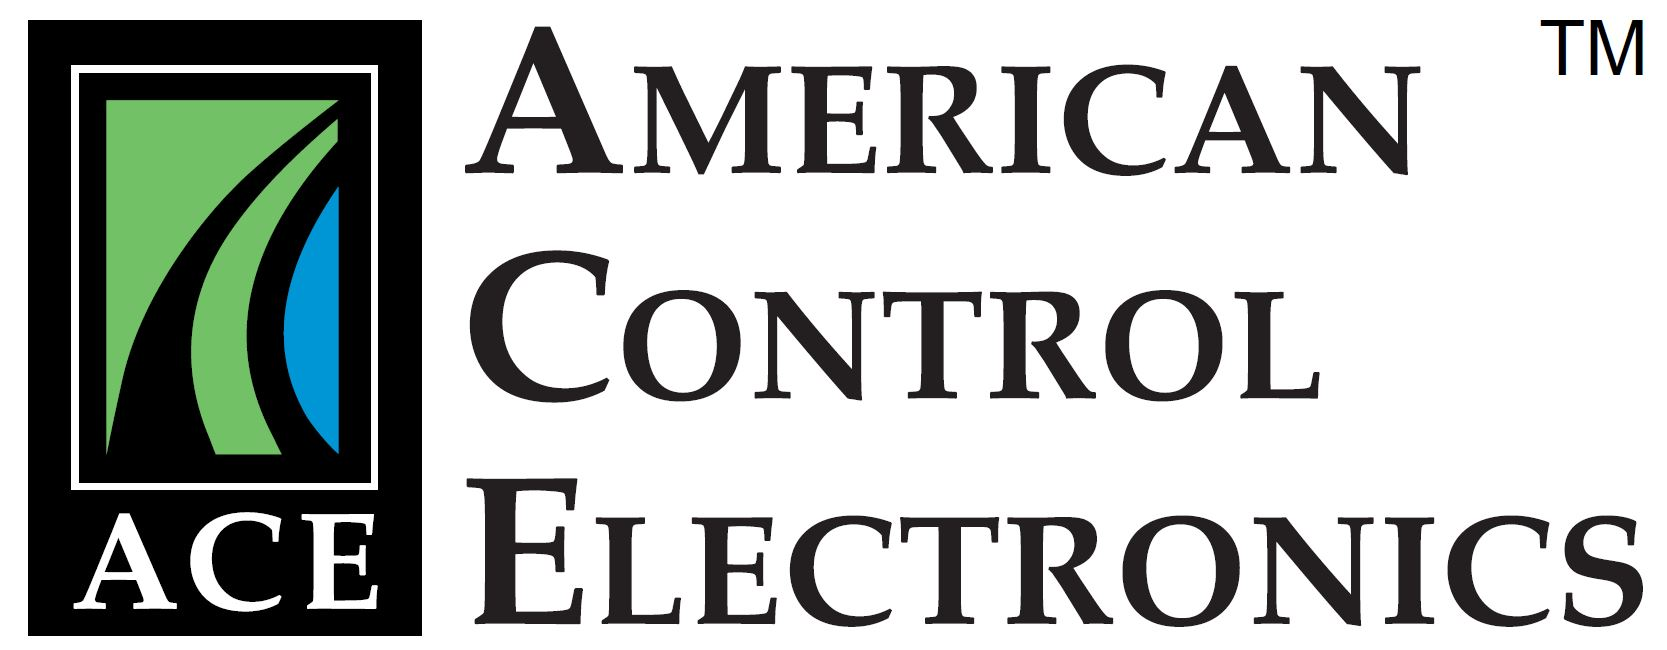 A wide variety of AC & DC Drive Control Electronics manufactured in an ISO 9001:2008 registered and UL508A certified US facility. -